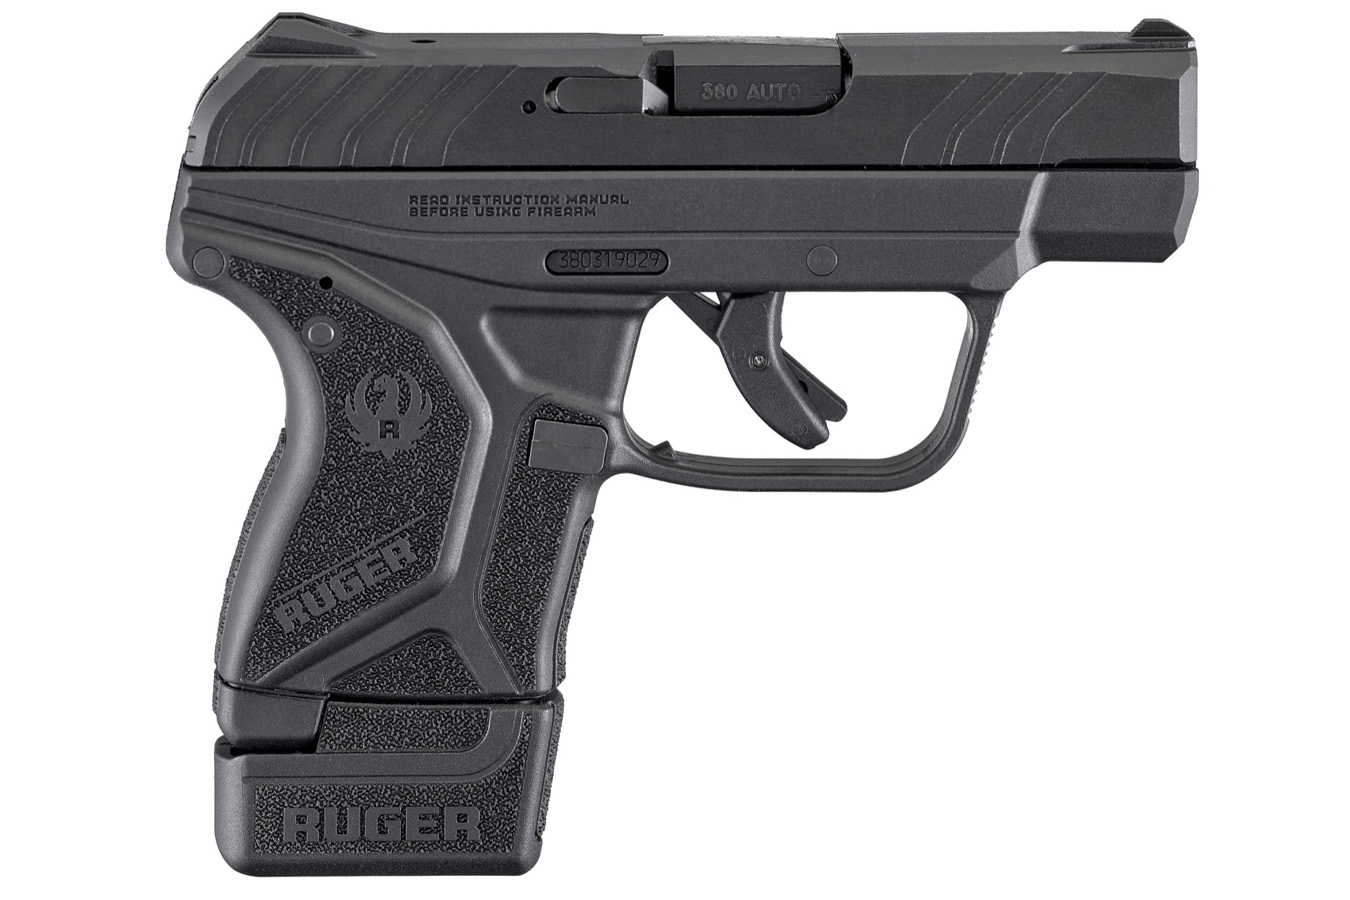 LCP II 380 Auto Carry Conceal Pistol with Grip Extension